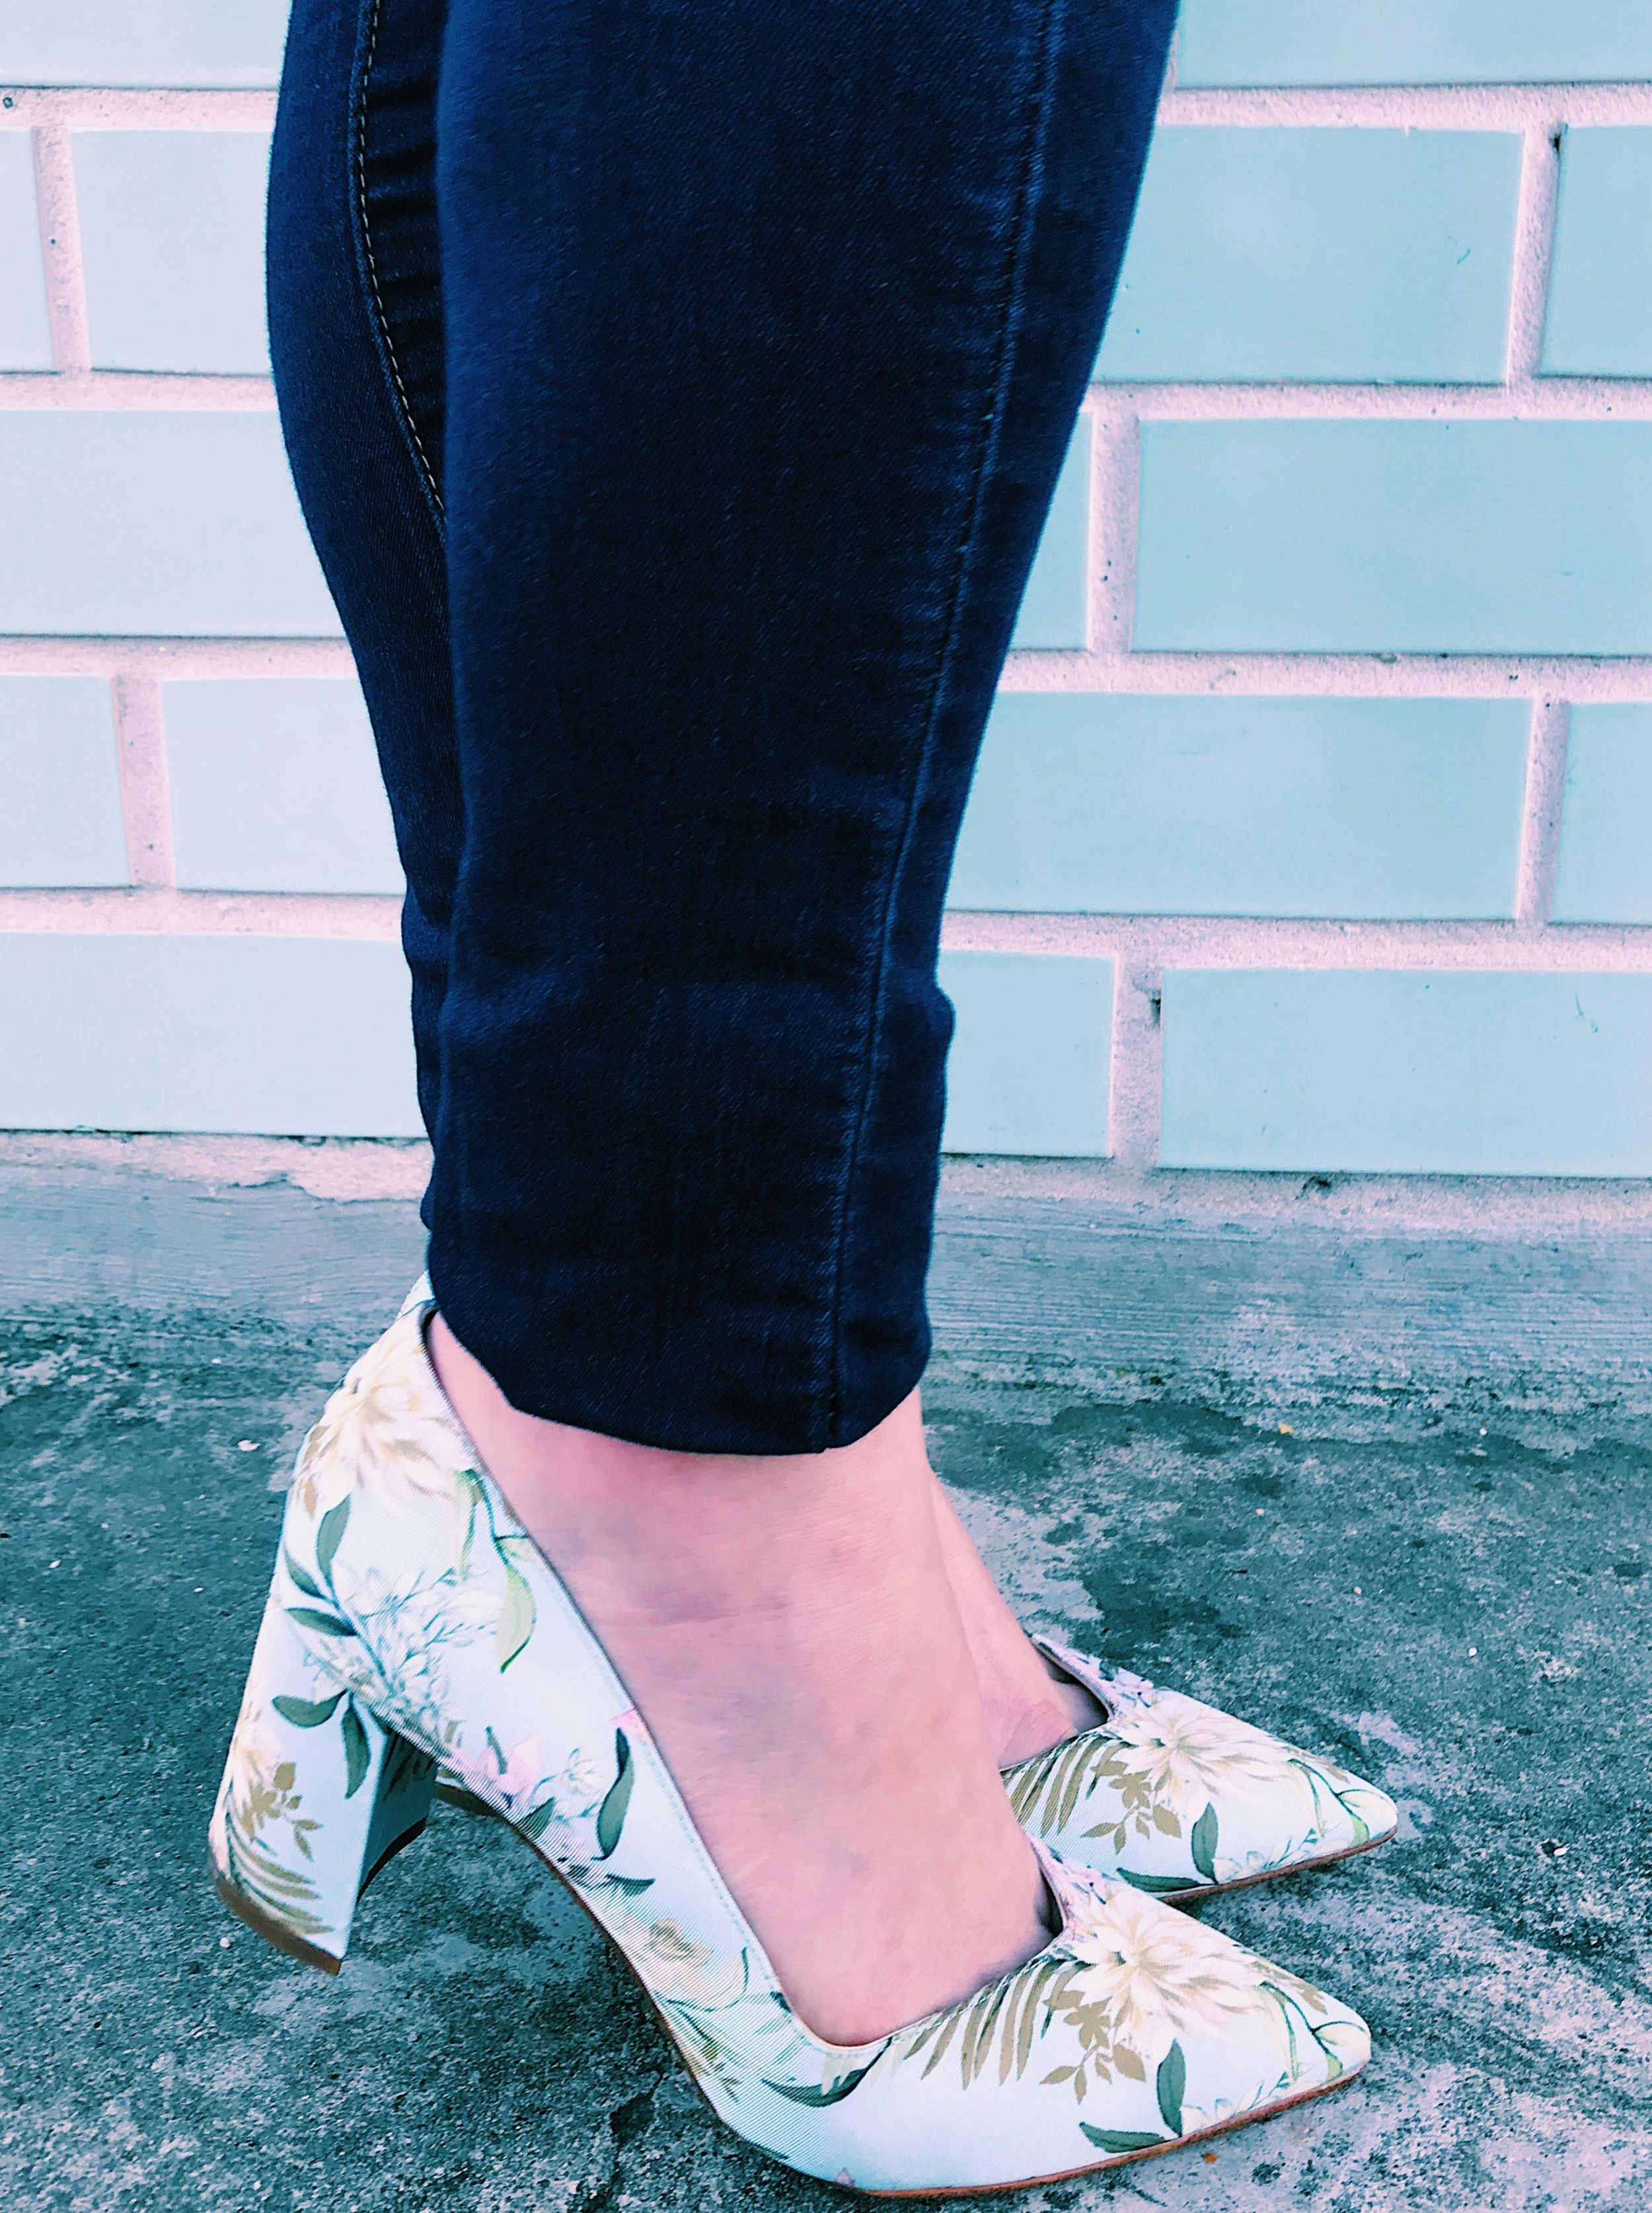 Three Heel Clicks - Trend to Watch - Floral Shoes for Spring (5).jpg